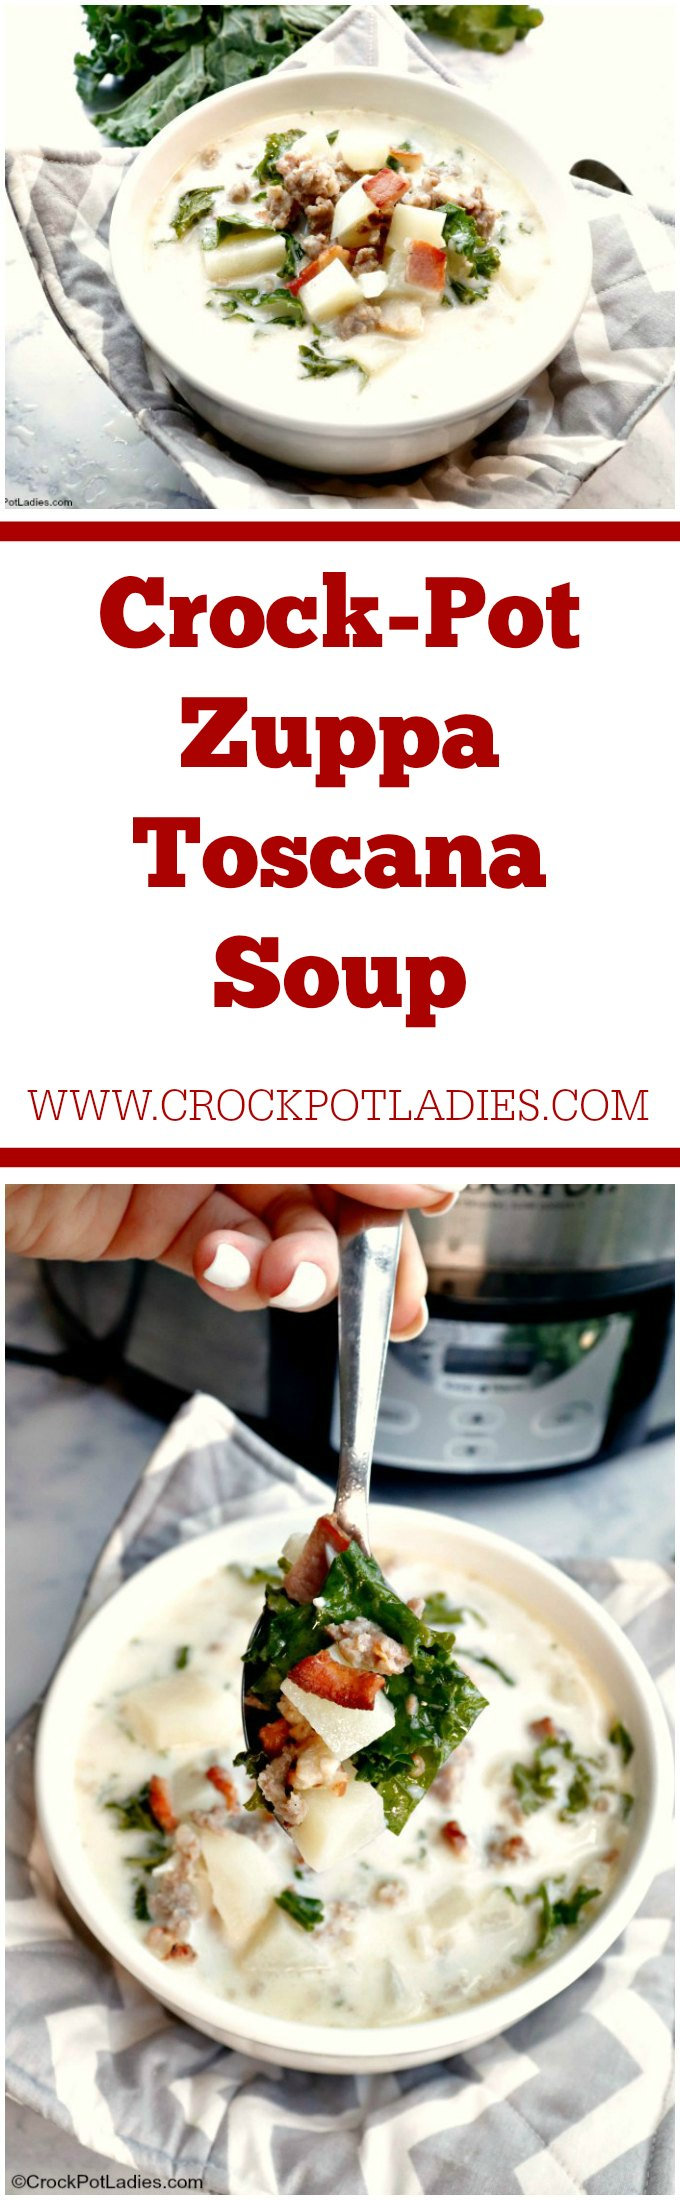 Crock-Pot Zuppa Toscana Soup